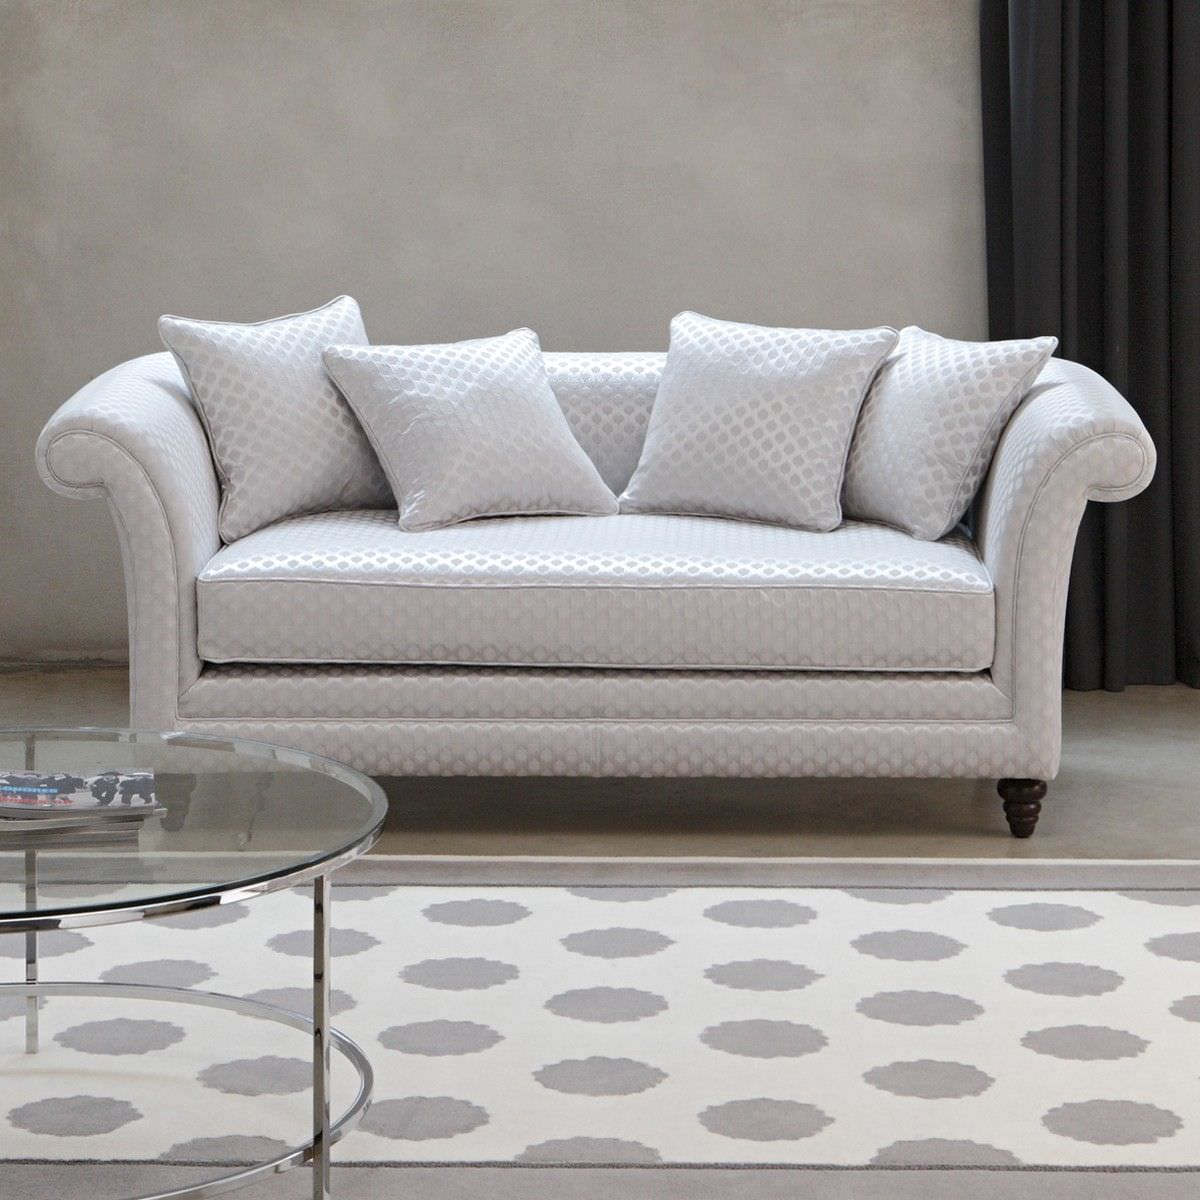 Traditional Sofa / Fabric / 2 Person / White   VISCONTI By Coralie Feildel  Halard